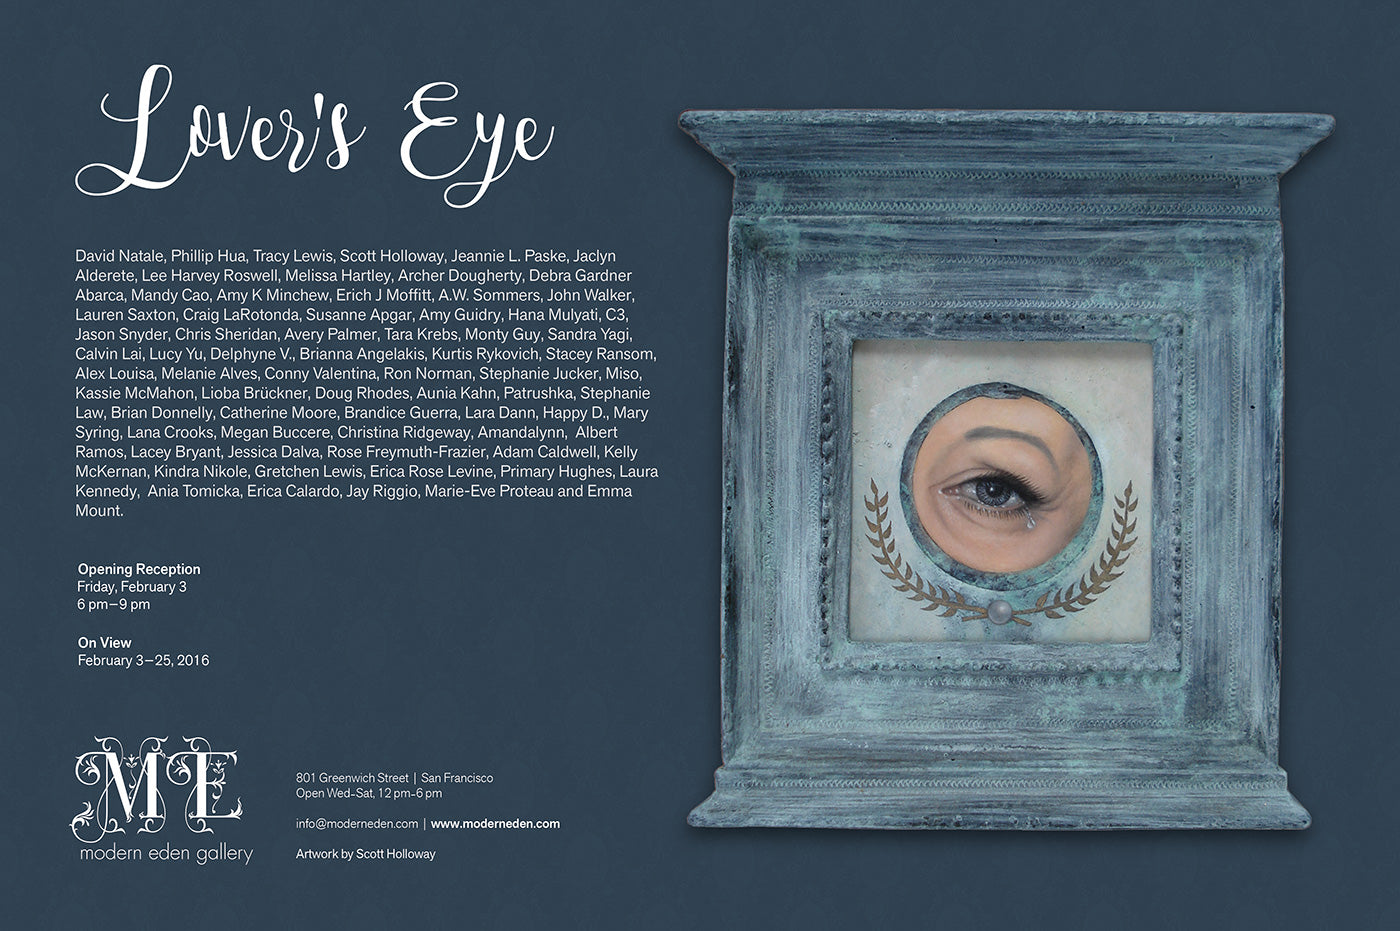 Lover's Eye Group Exhibition at Modern Eden Gallery